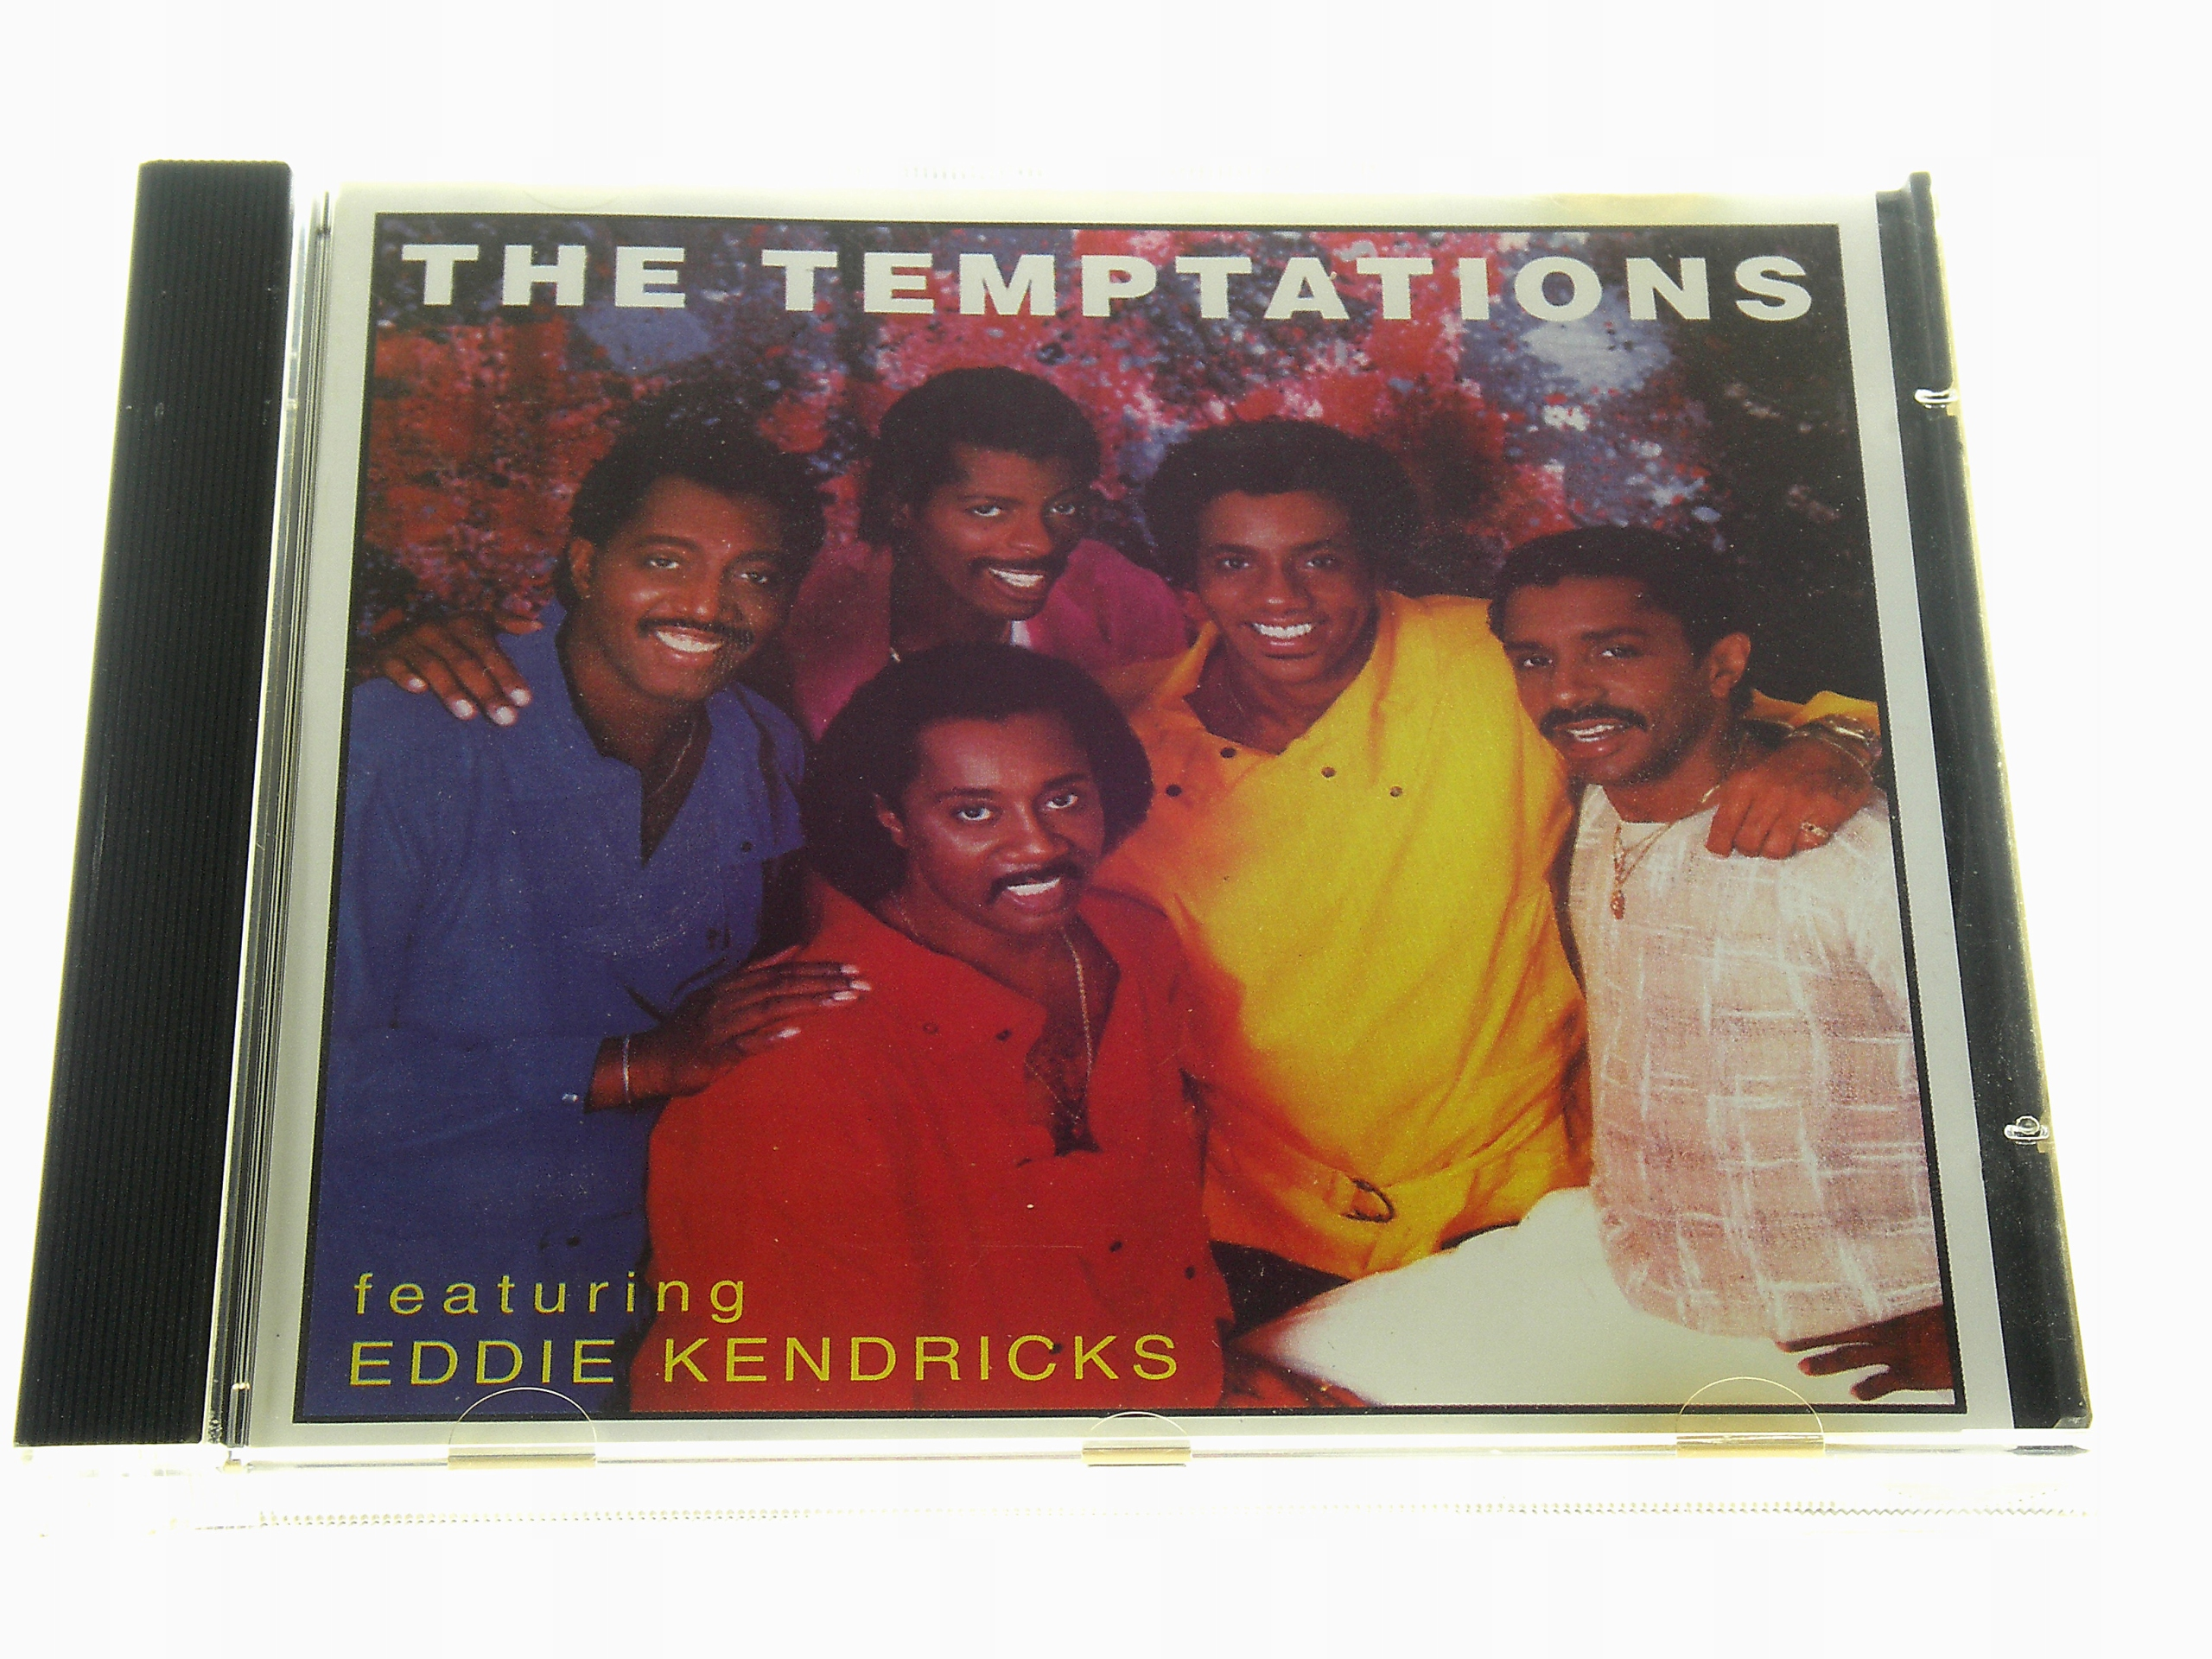 THE TEMPTATIONS FEATURING - EDDIE KENDRICKS